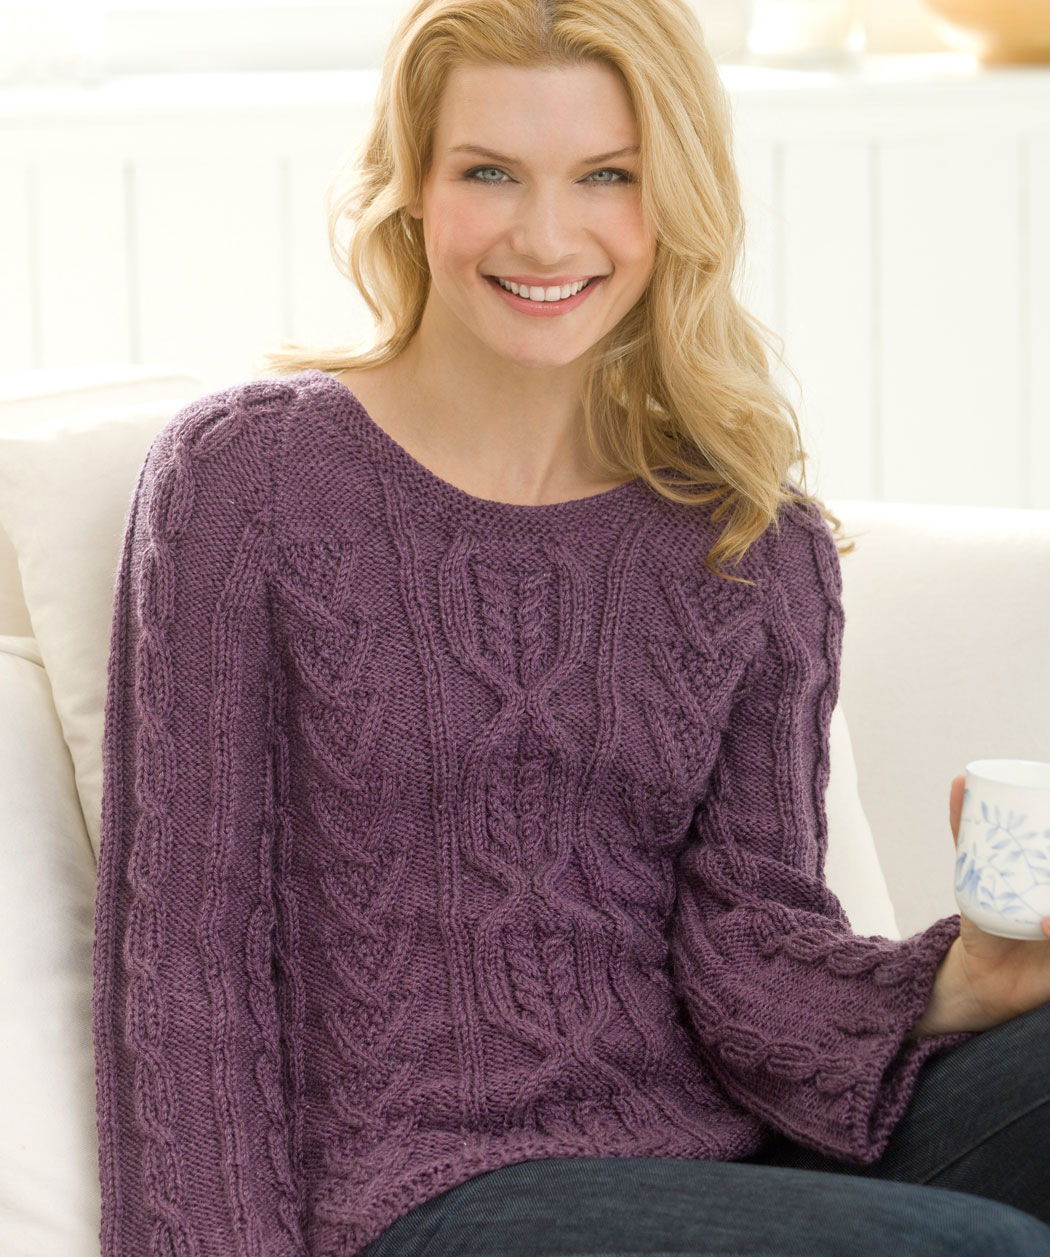 Easy Aran Cardigan Knitting Pattern : Cable Knit Sweater Patterns A Knitting Blog